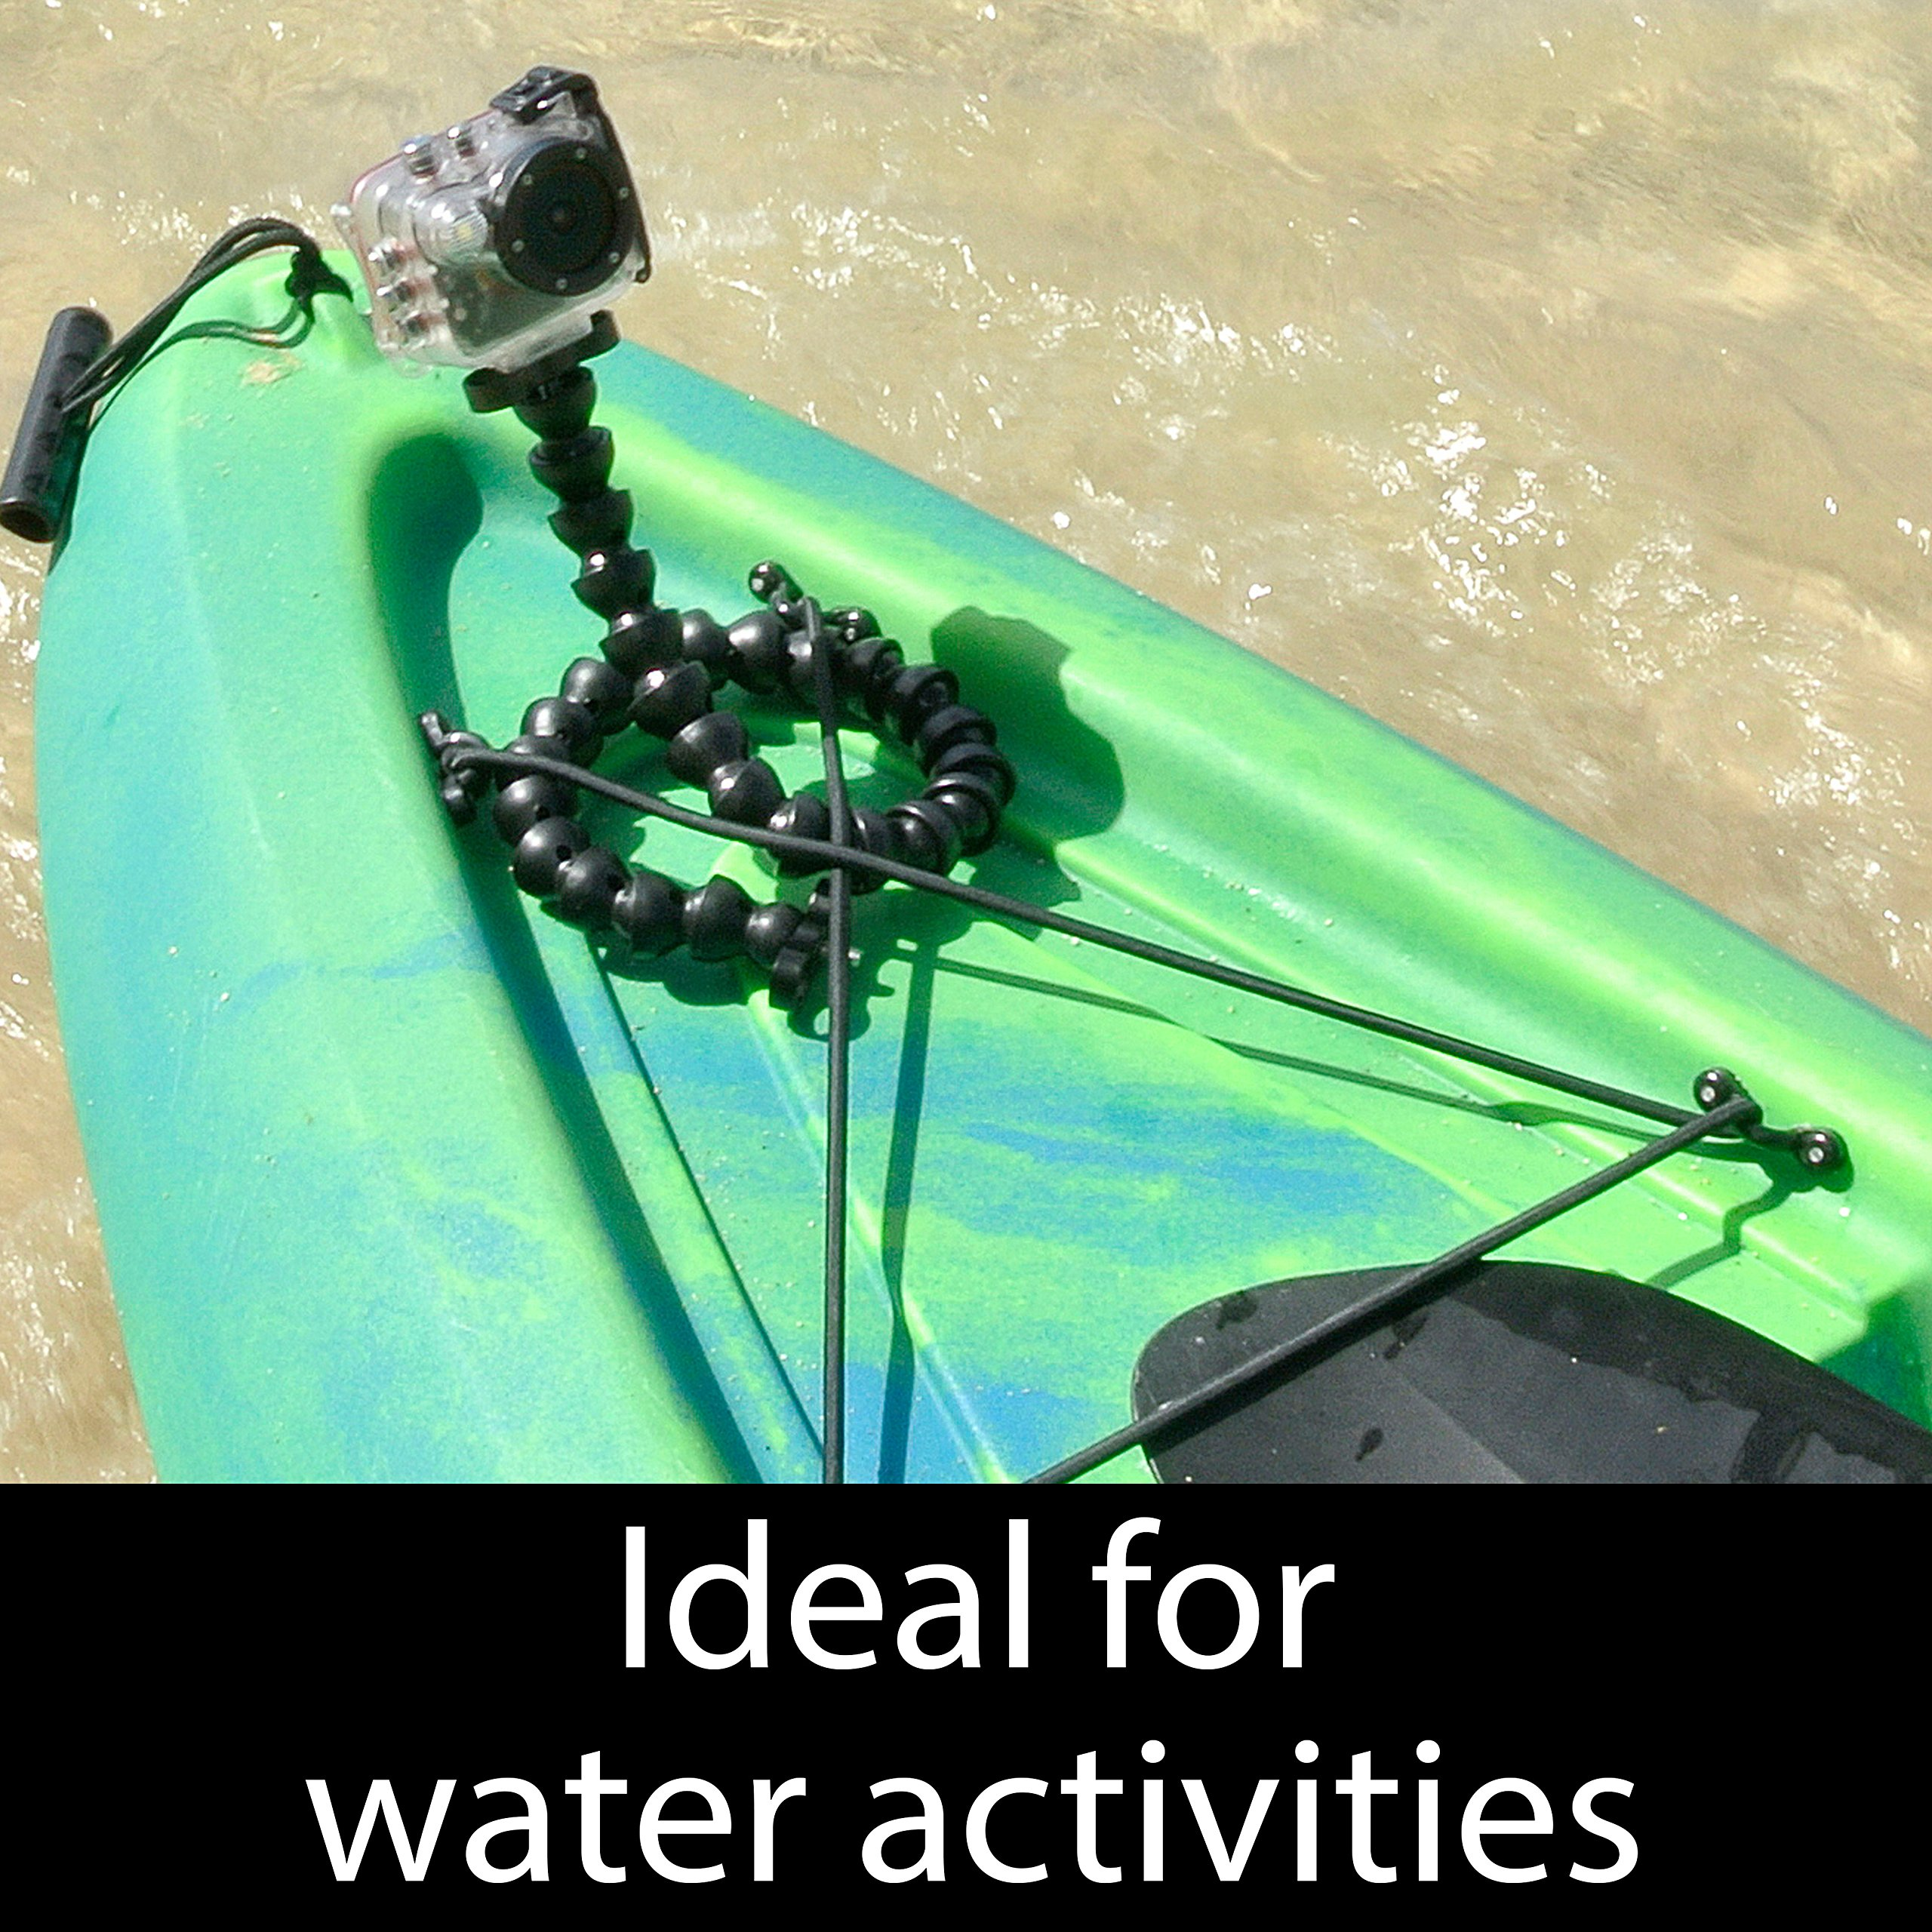 Intova HD2 Waterproof 8MP Action Camera with Built-in 150-Lumen Light and Remote Control by Intova (Image #8)